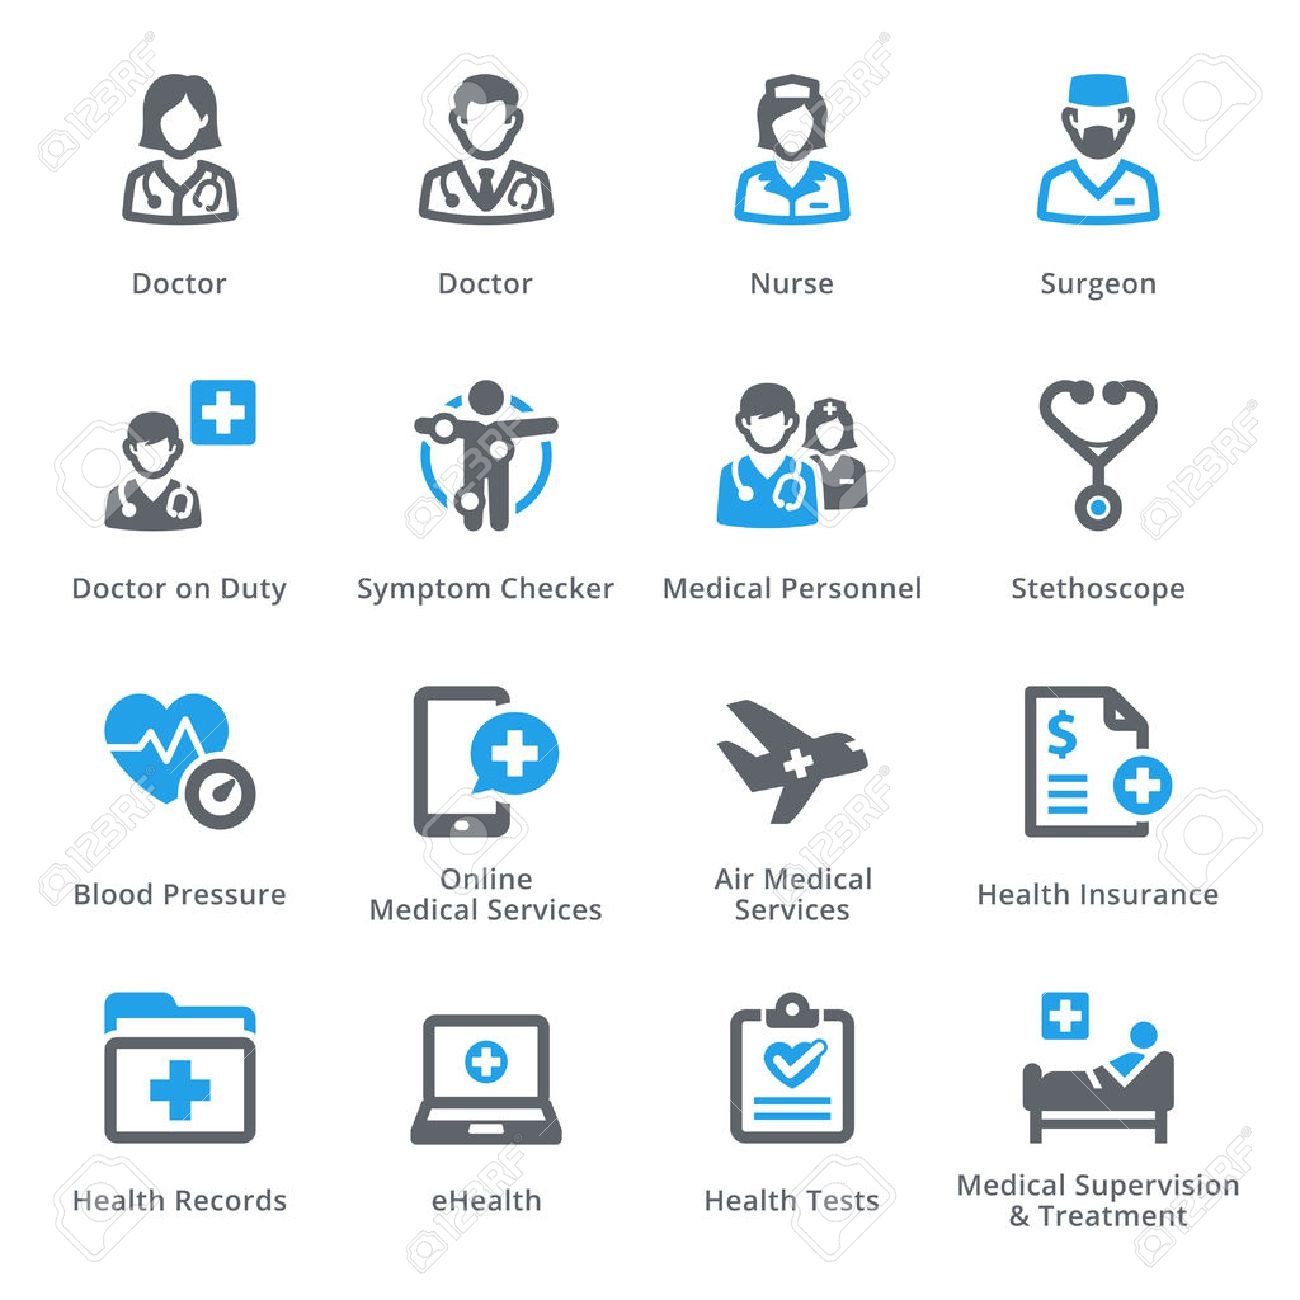 Medical & Health Care Icons Set 2 - Services | Sympa Series - 54784401